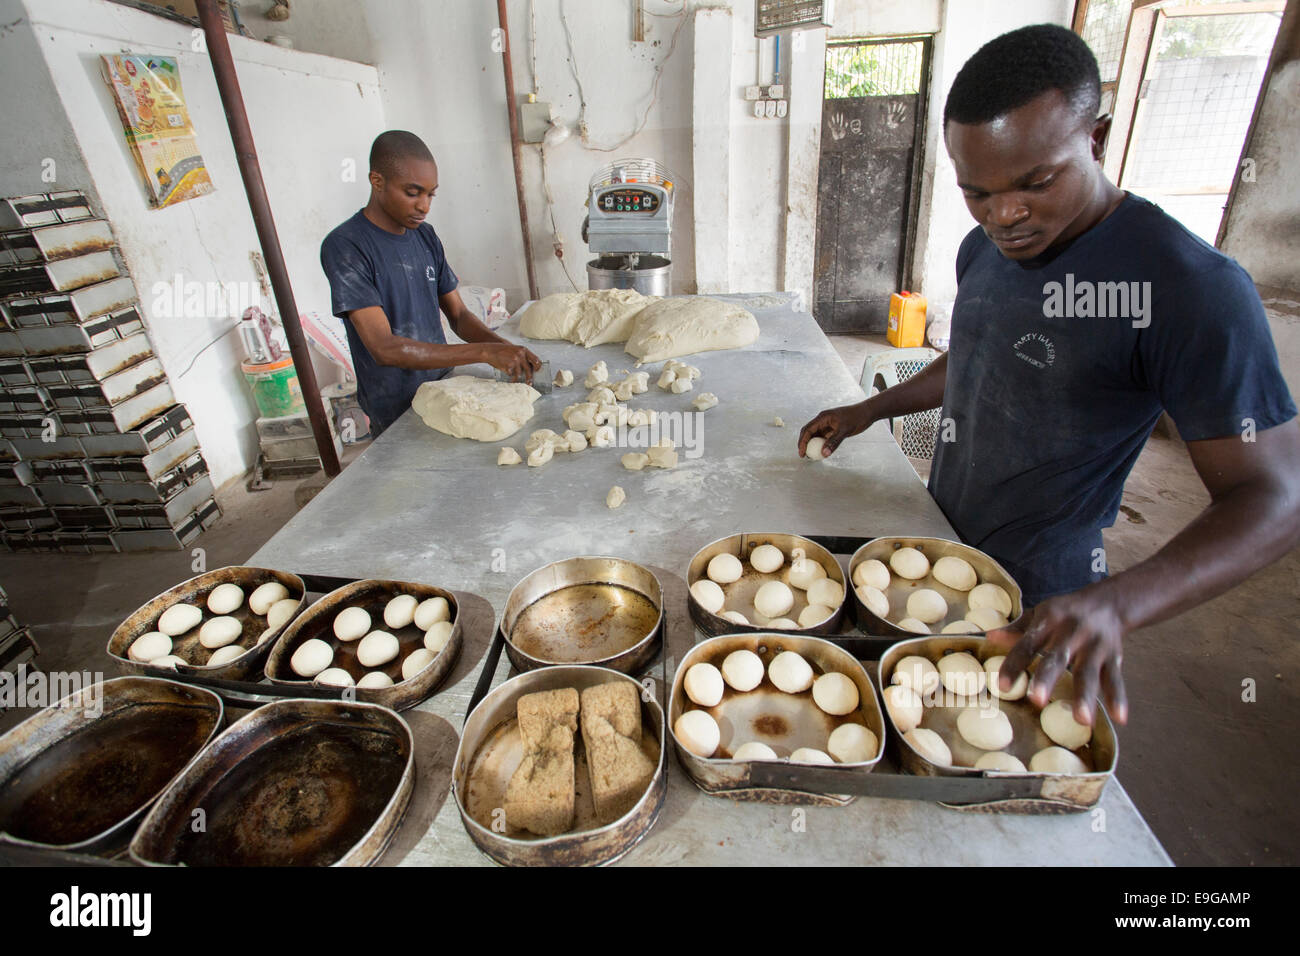 Commercial bakery in Dar es Salaam, Tanzania, East Africa. - Stock Image